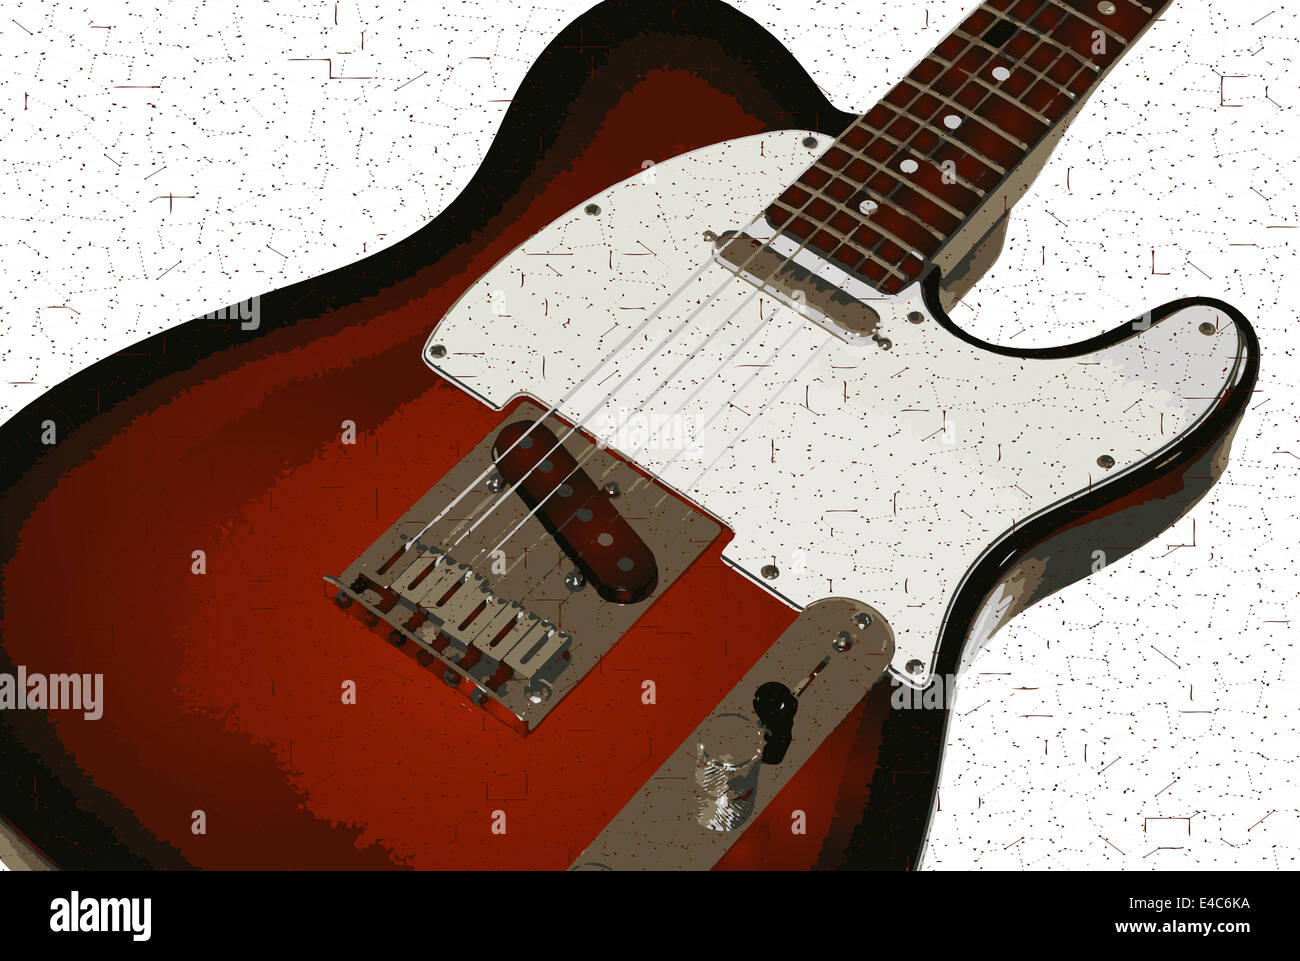 Text Rock Music Monochrome Music Bands 2652x2284 Wallpaper: Electric Guitar Drawing On White Stock Photos & Electric